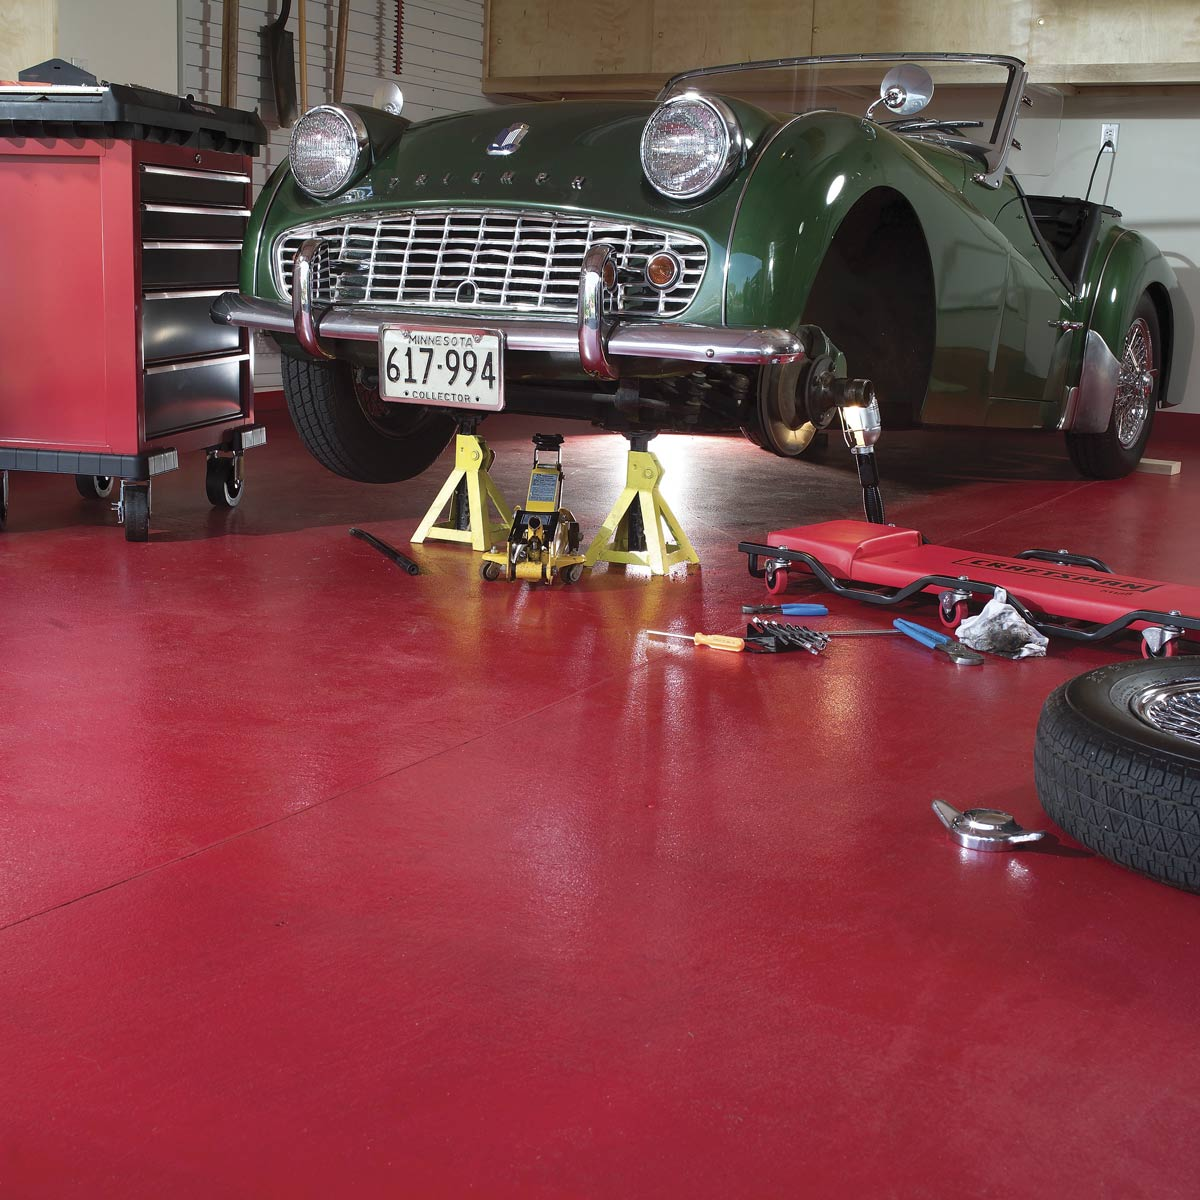 How To Store A Car - Preparation Tips For Vehicle Storage